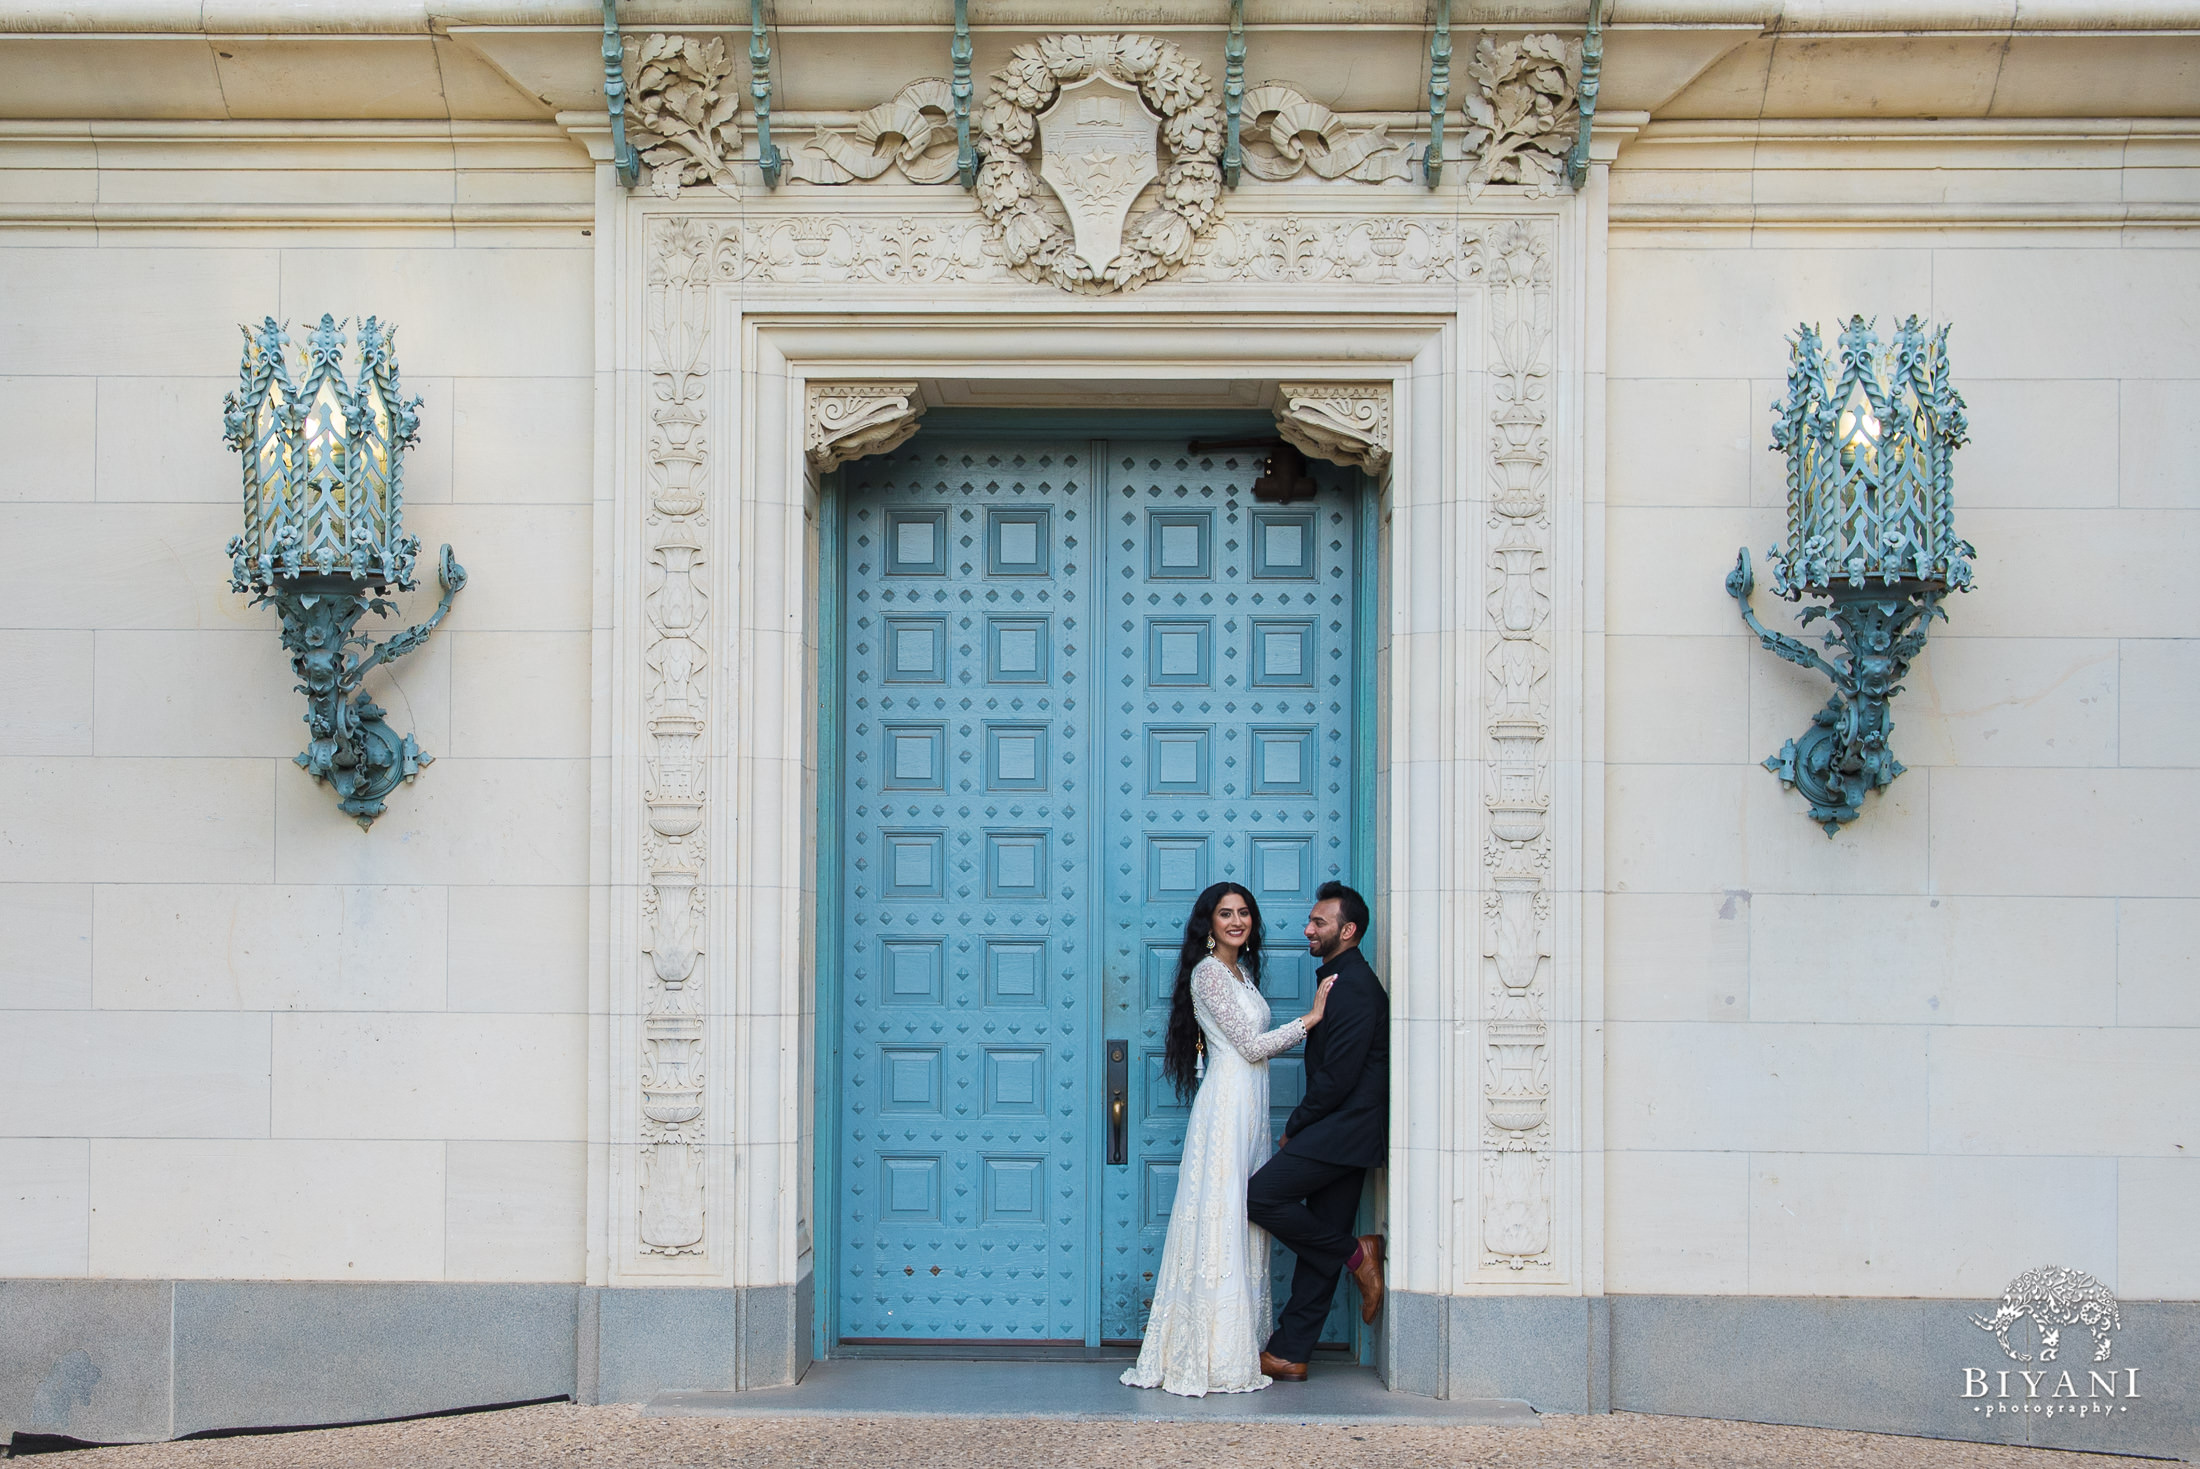 couple posing in front of blue door on building at University of Texas, Austin campus